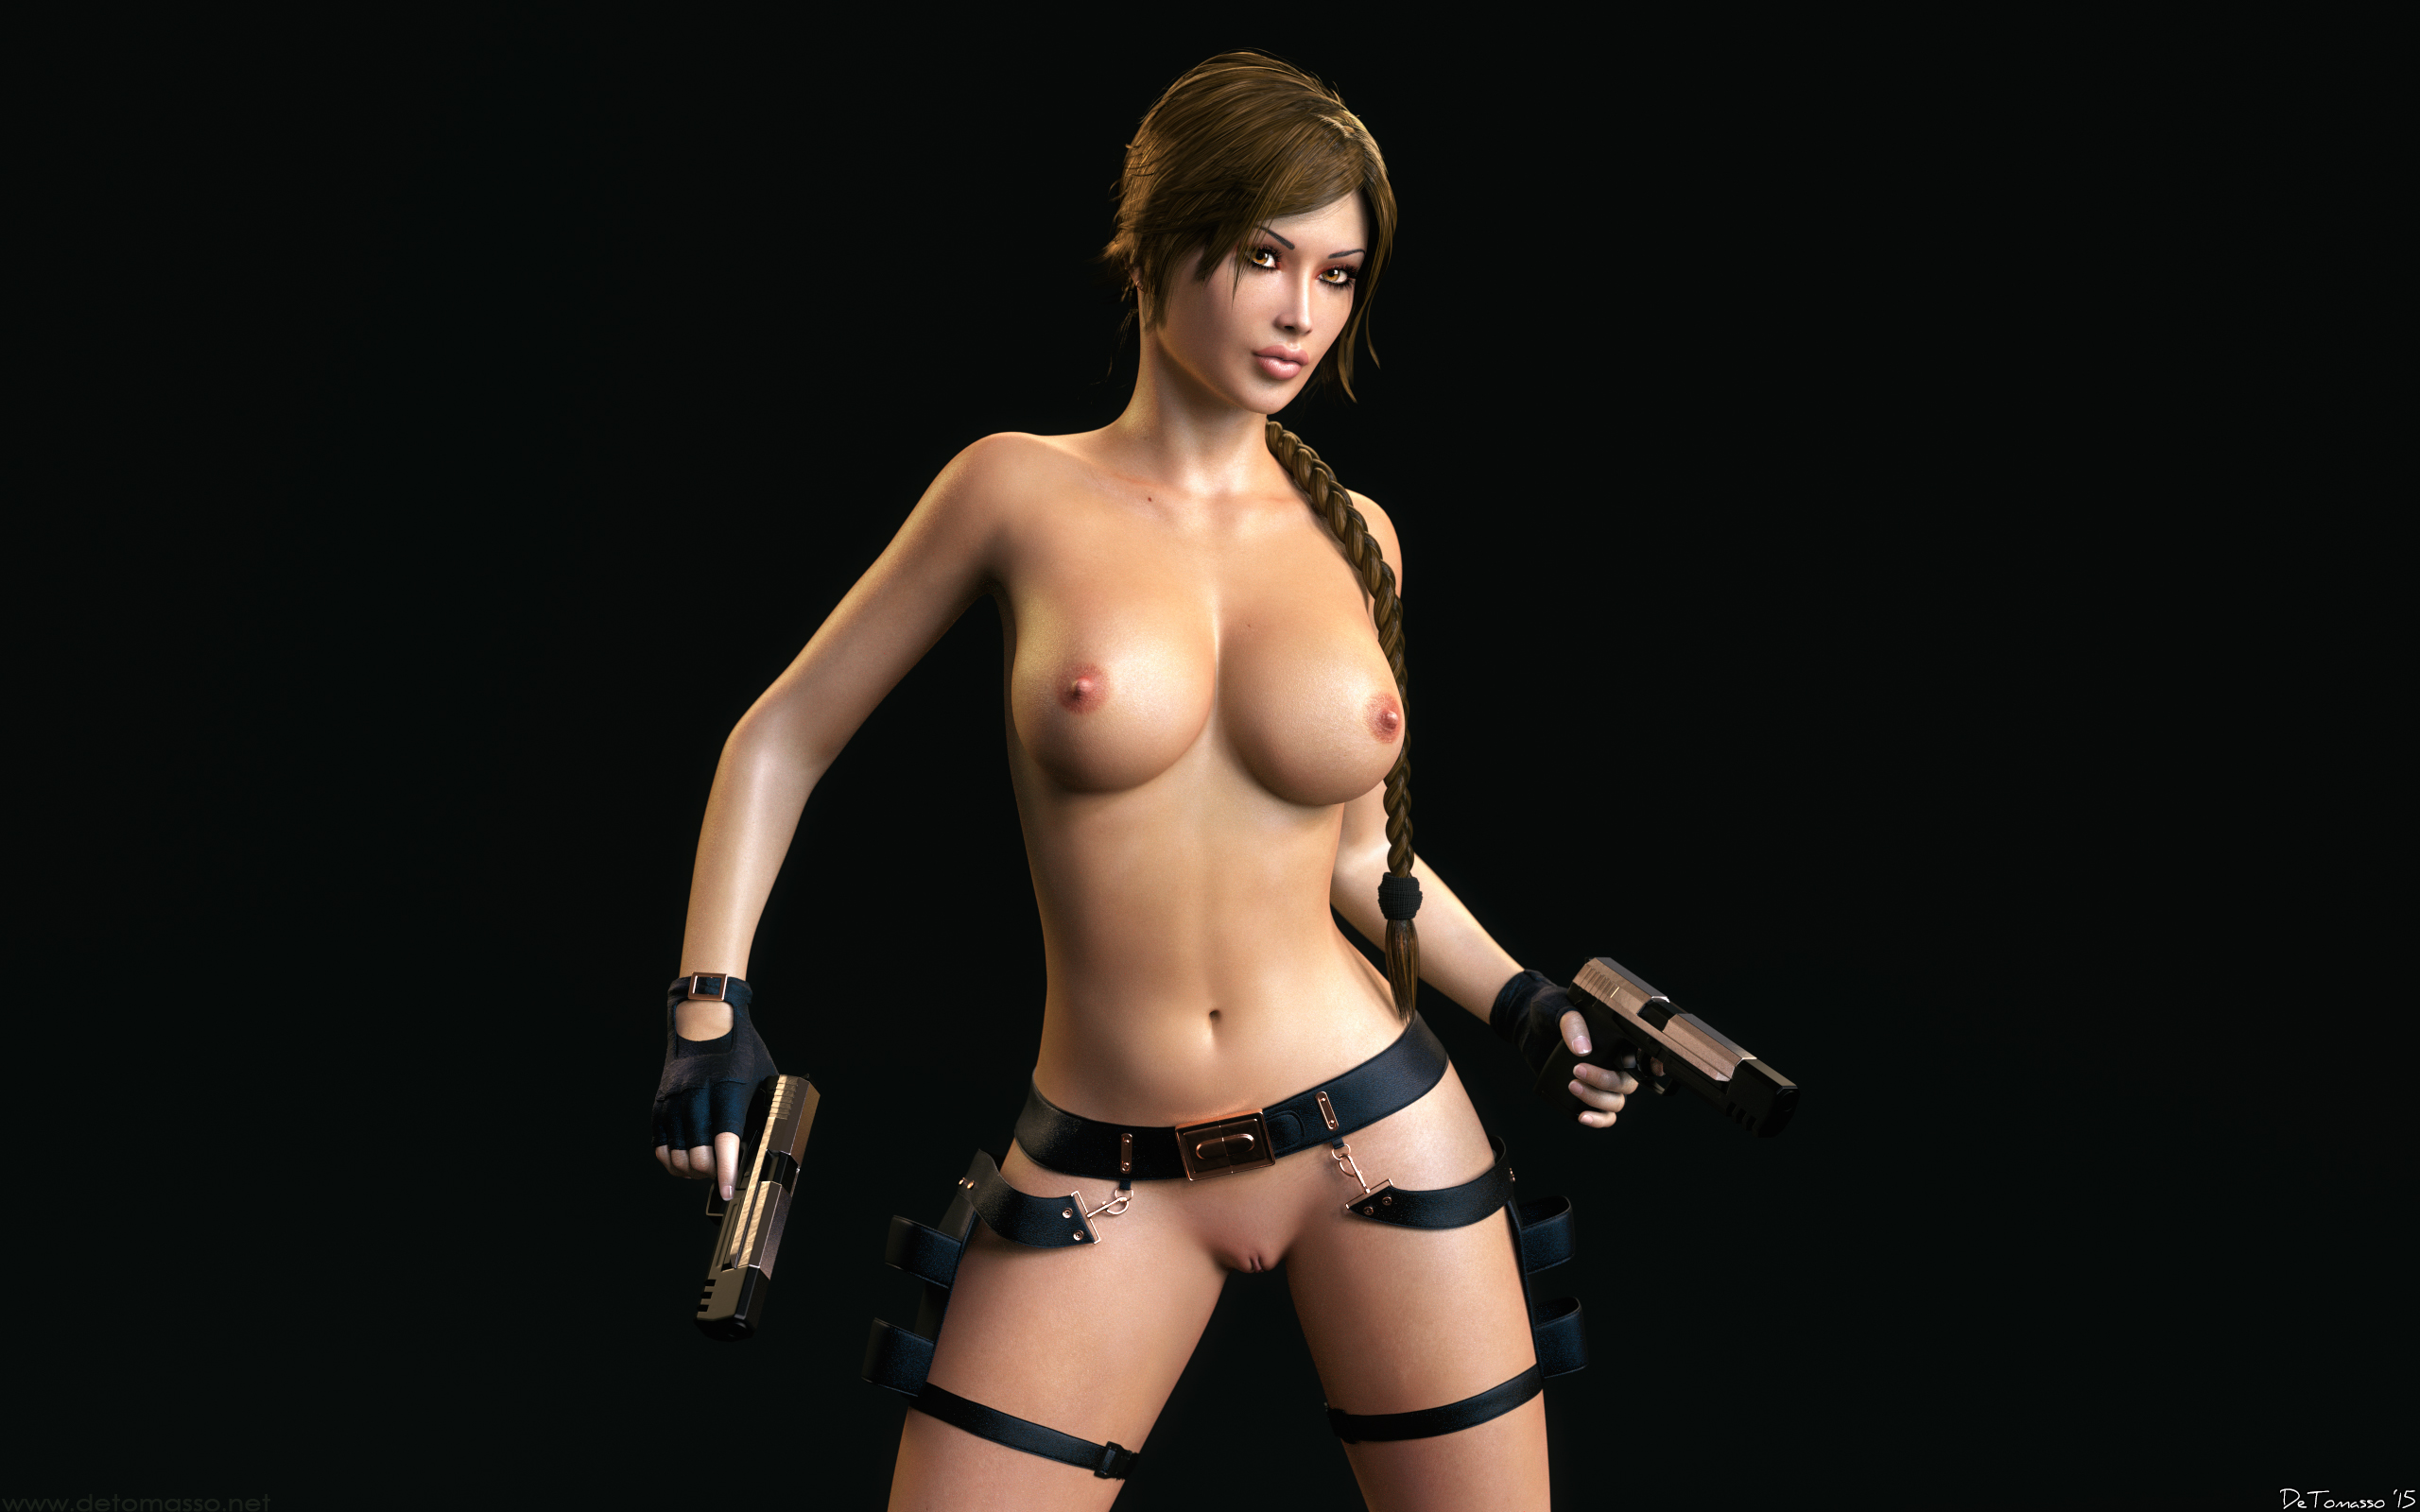 Lara croft nude pics & vids naked photos